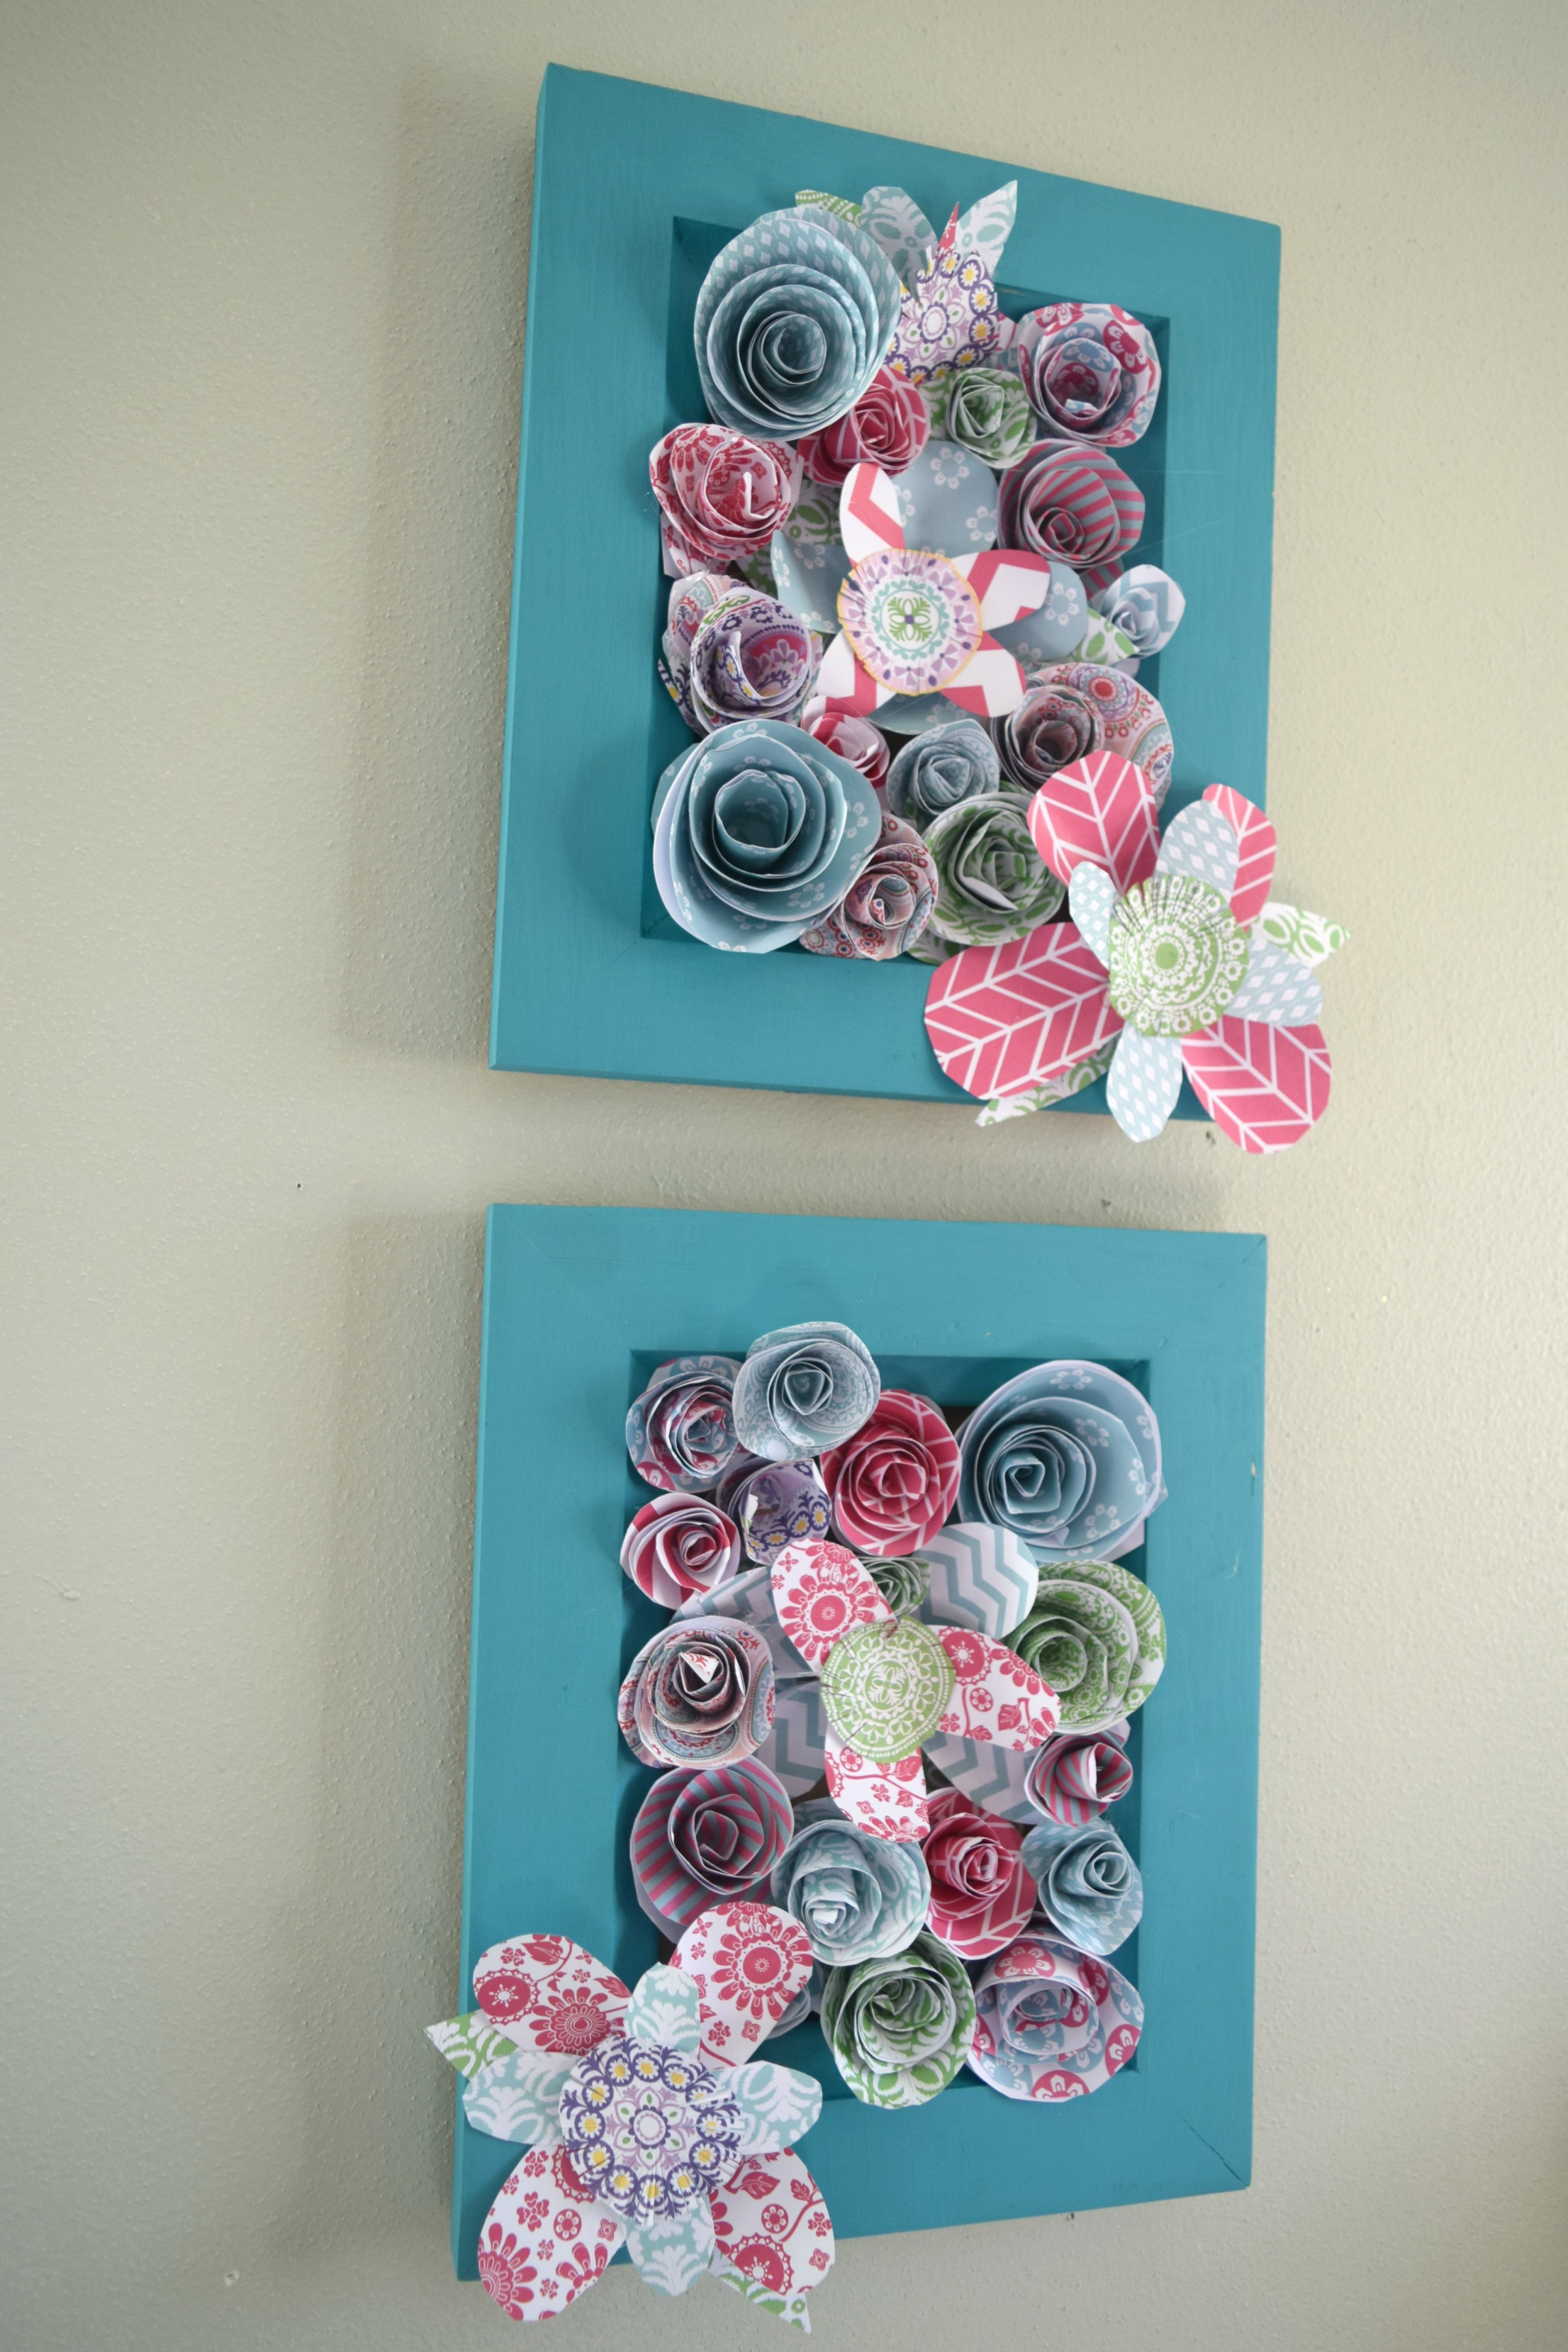 How to make wall art using paper flowers our house now a - Bedroom wall decor ideas ...